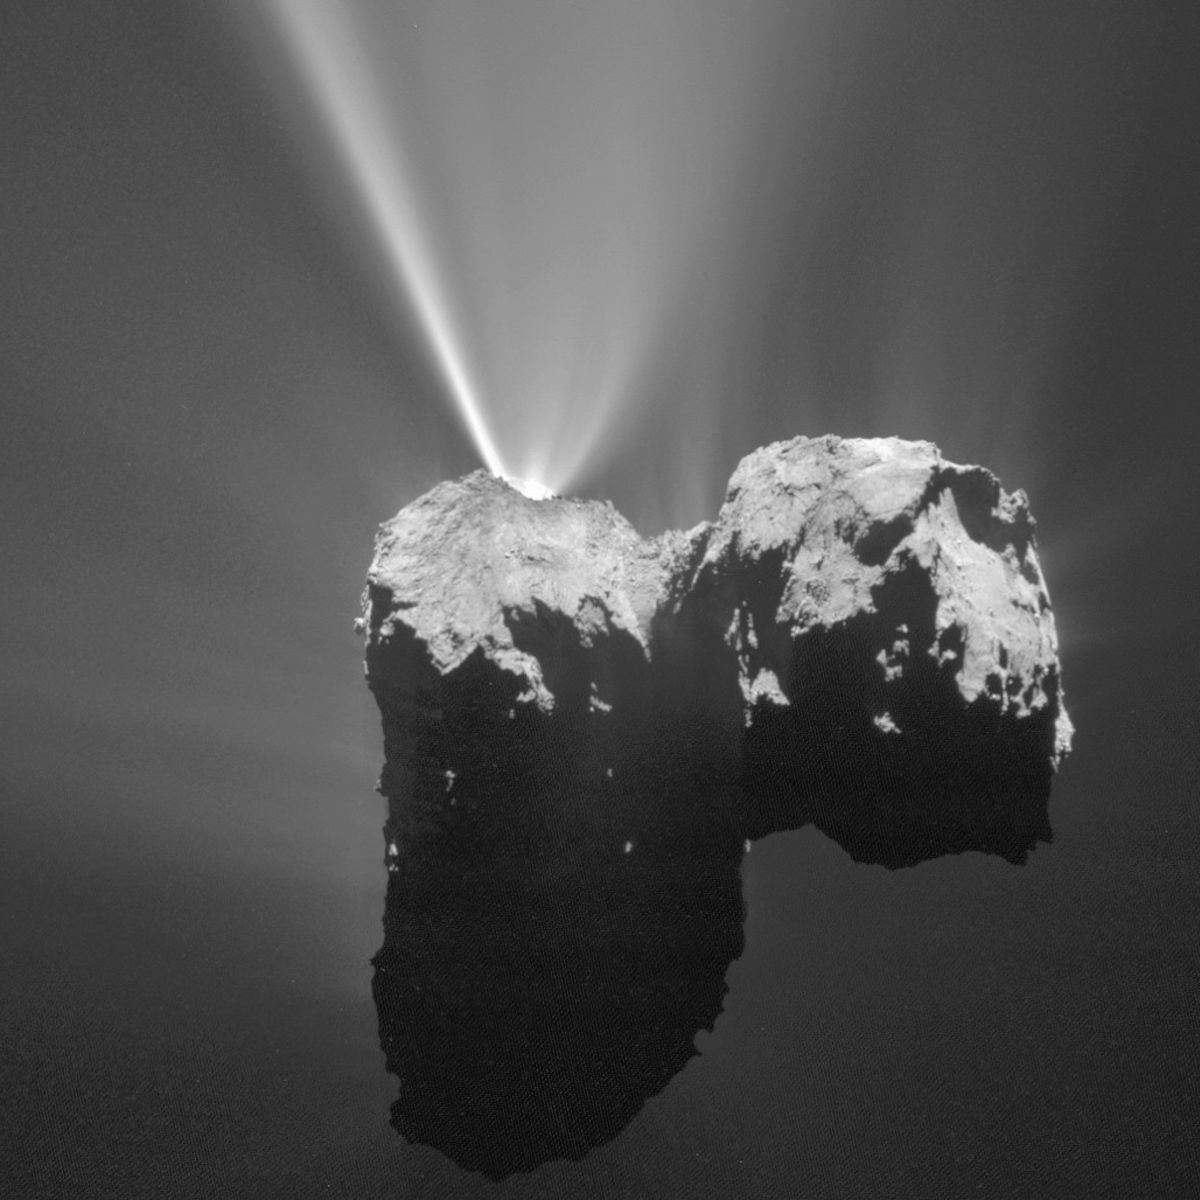 The comet 67/P Churyumov-Gerasimenko vents gas and dust into space. Credit: ESA/Rosetta/MPS for OSIRIS Team MPS/UPD/LAM/IAA/SSO/INTA/UPM/DASP/IDA